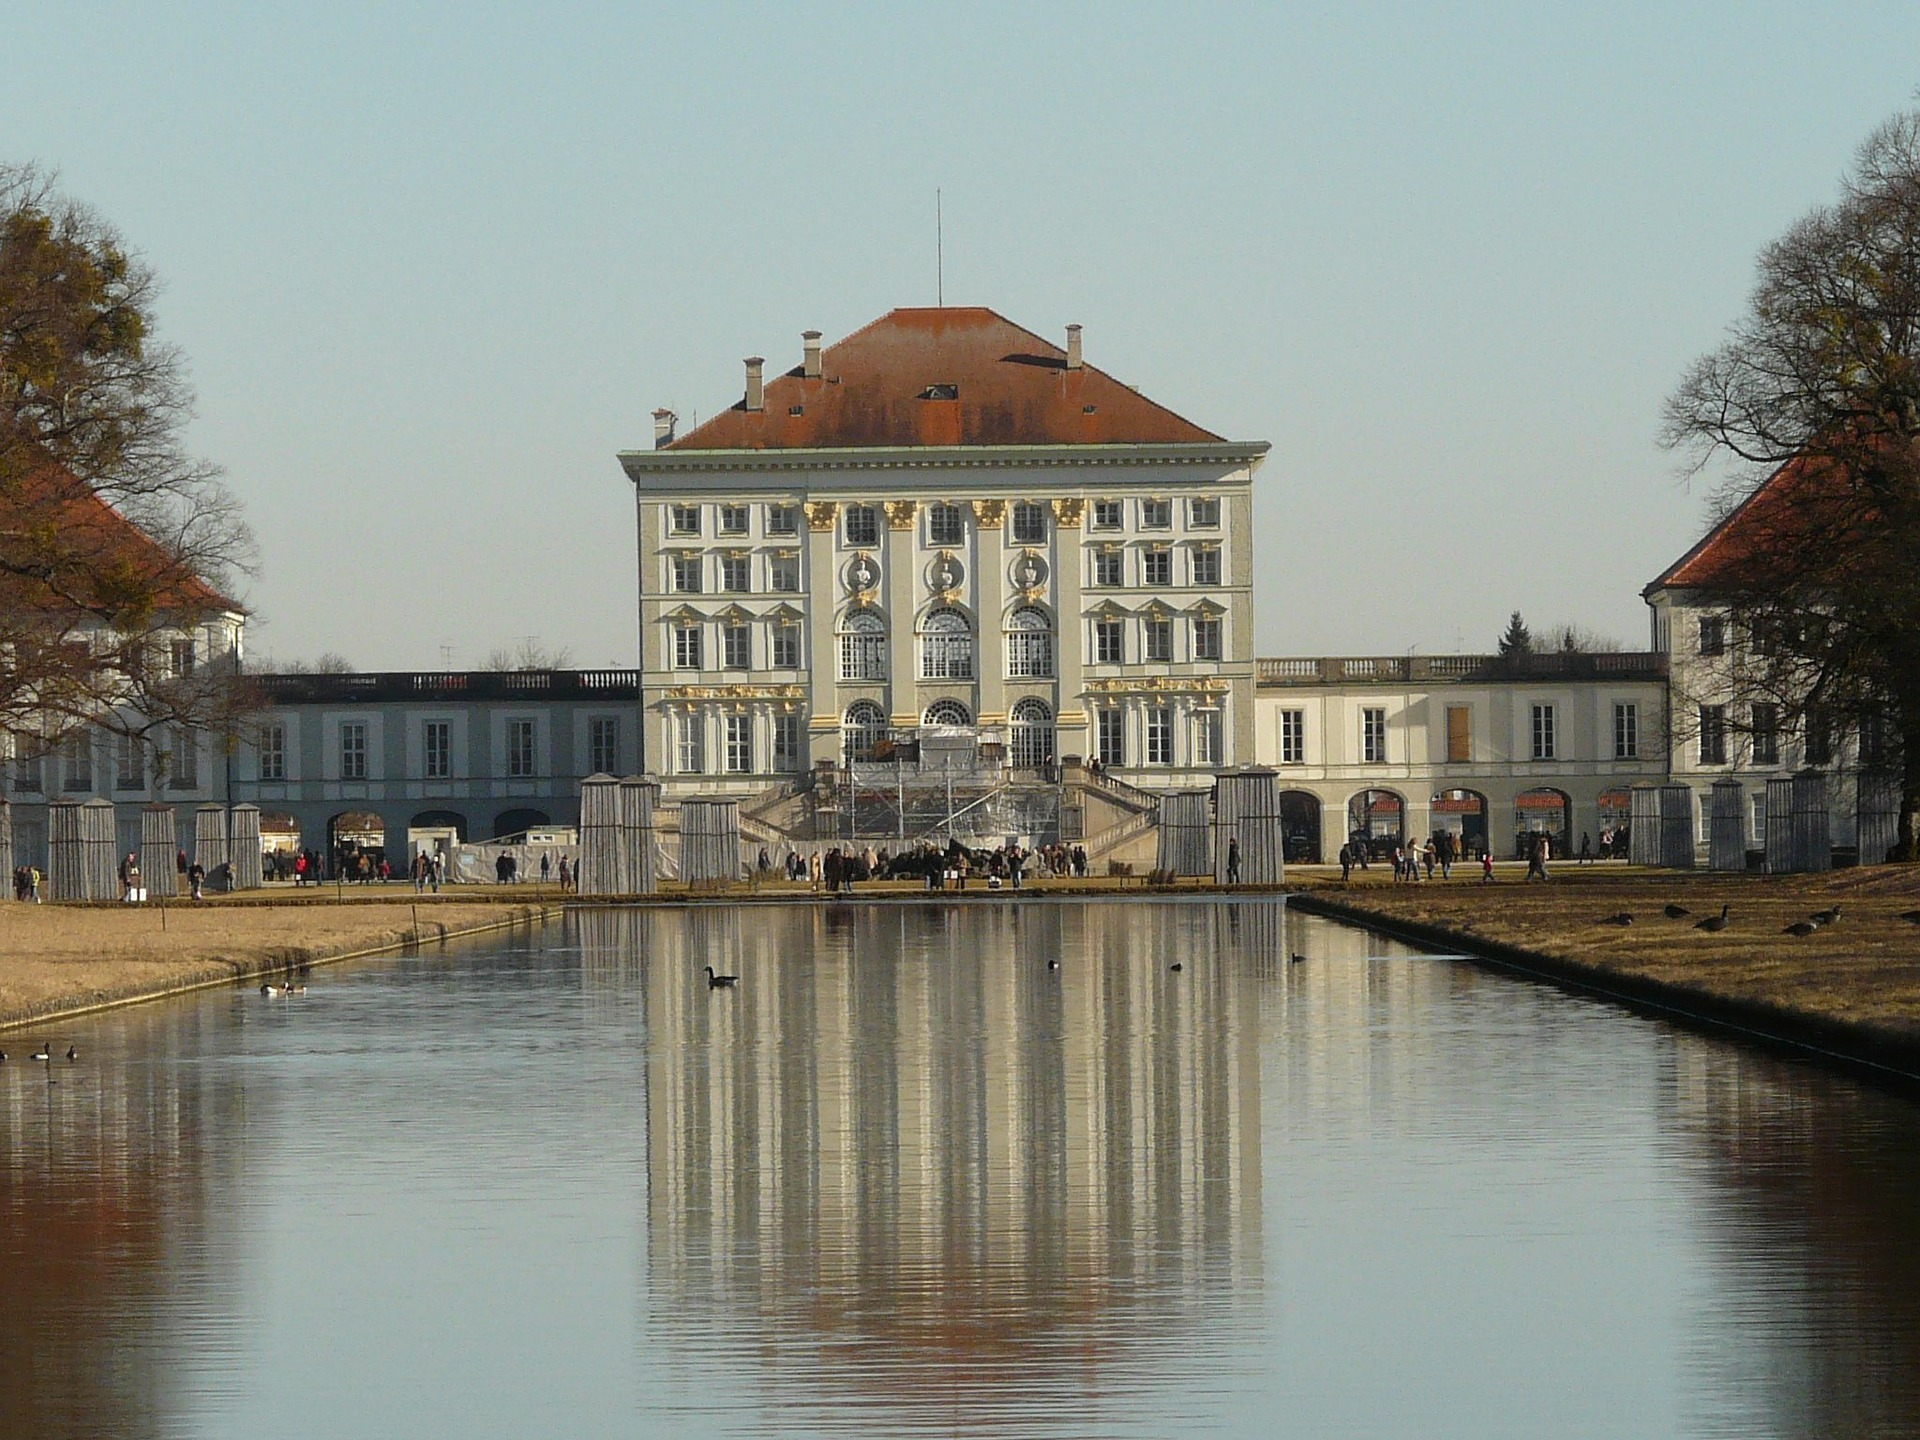 Cash Pool Flughafen München Munich City Guide Places To Go And Things To Do In Bavaria